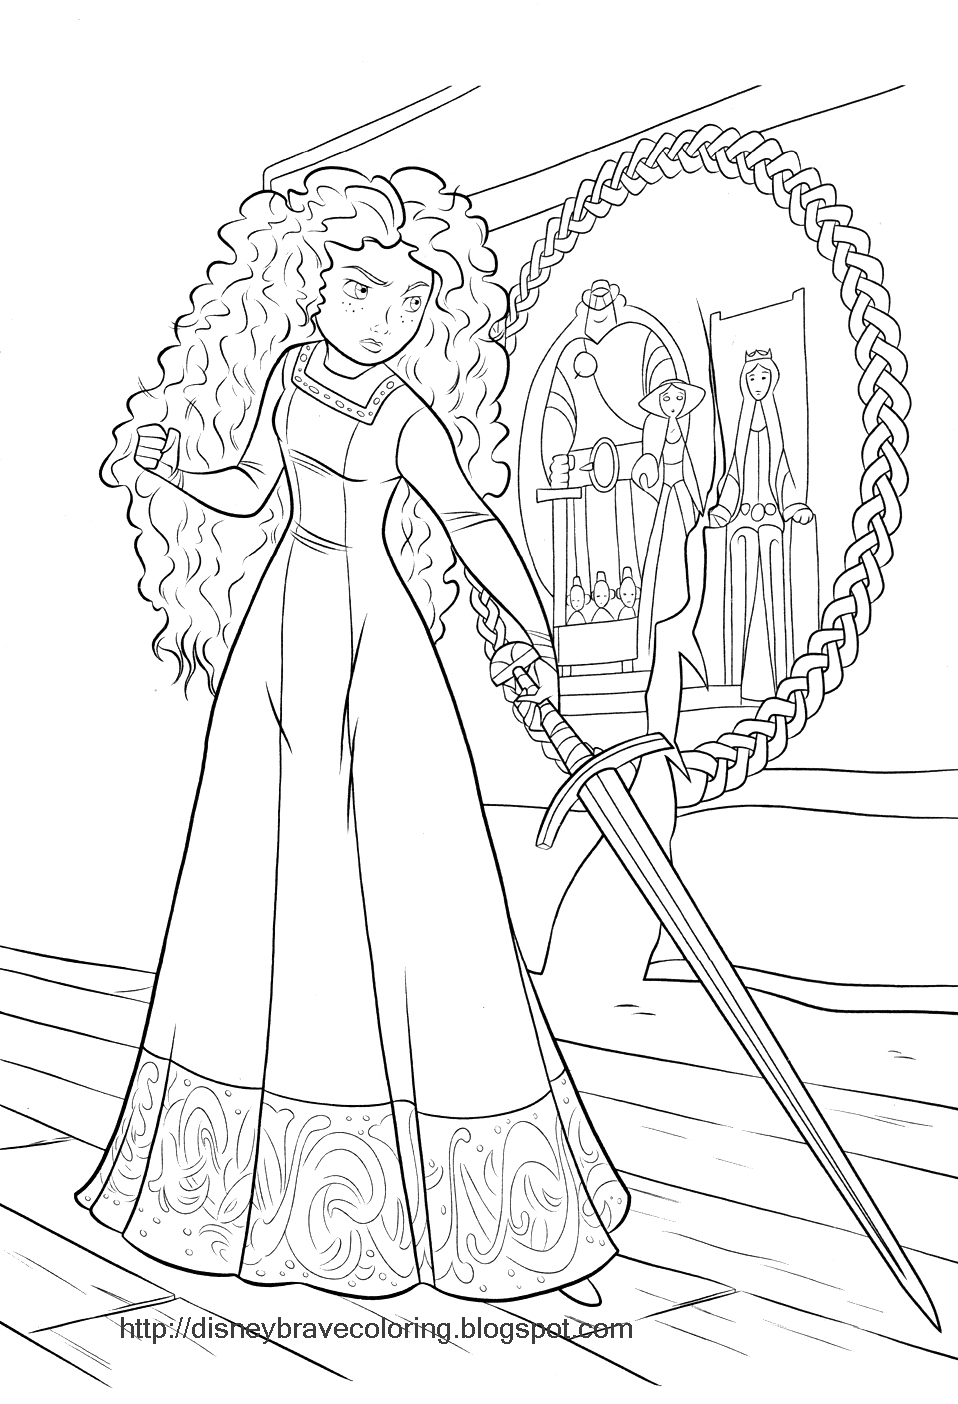 1000 images about coloriage disney on pinterest coloring frozen coloring pages and tinkerbell - Coloriage disney ...